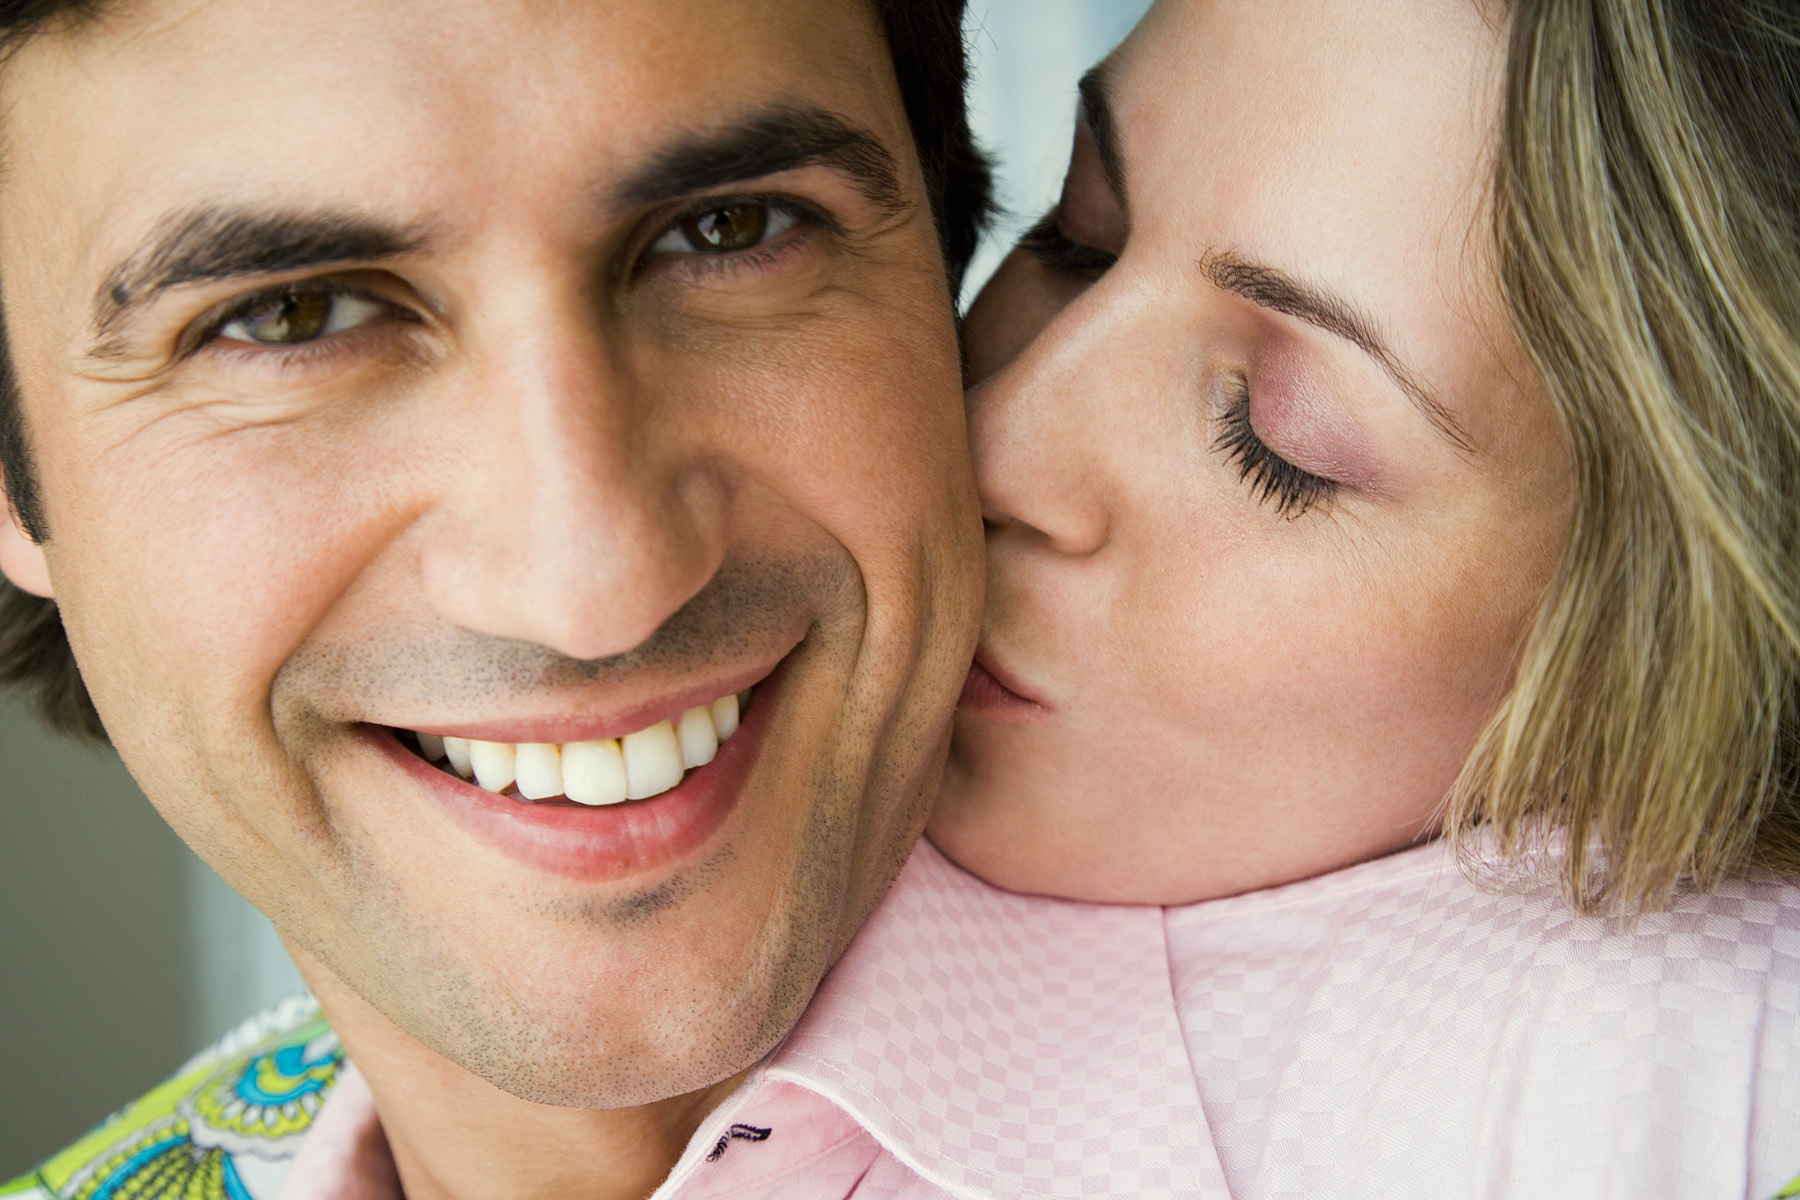 This is the BLUEPRINT for relationship happiness in 2015